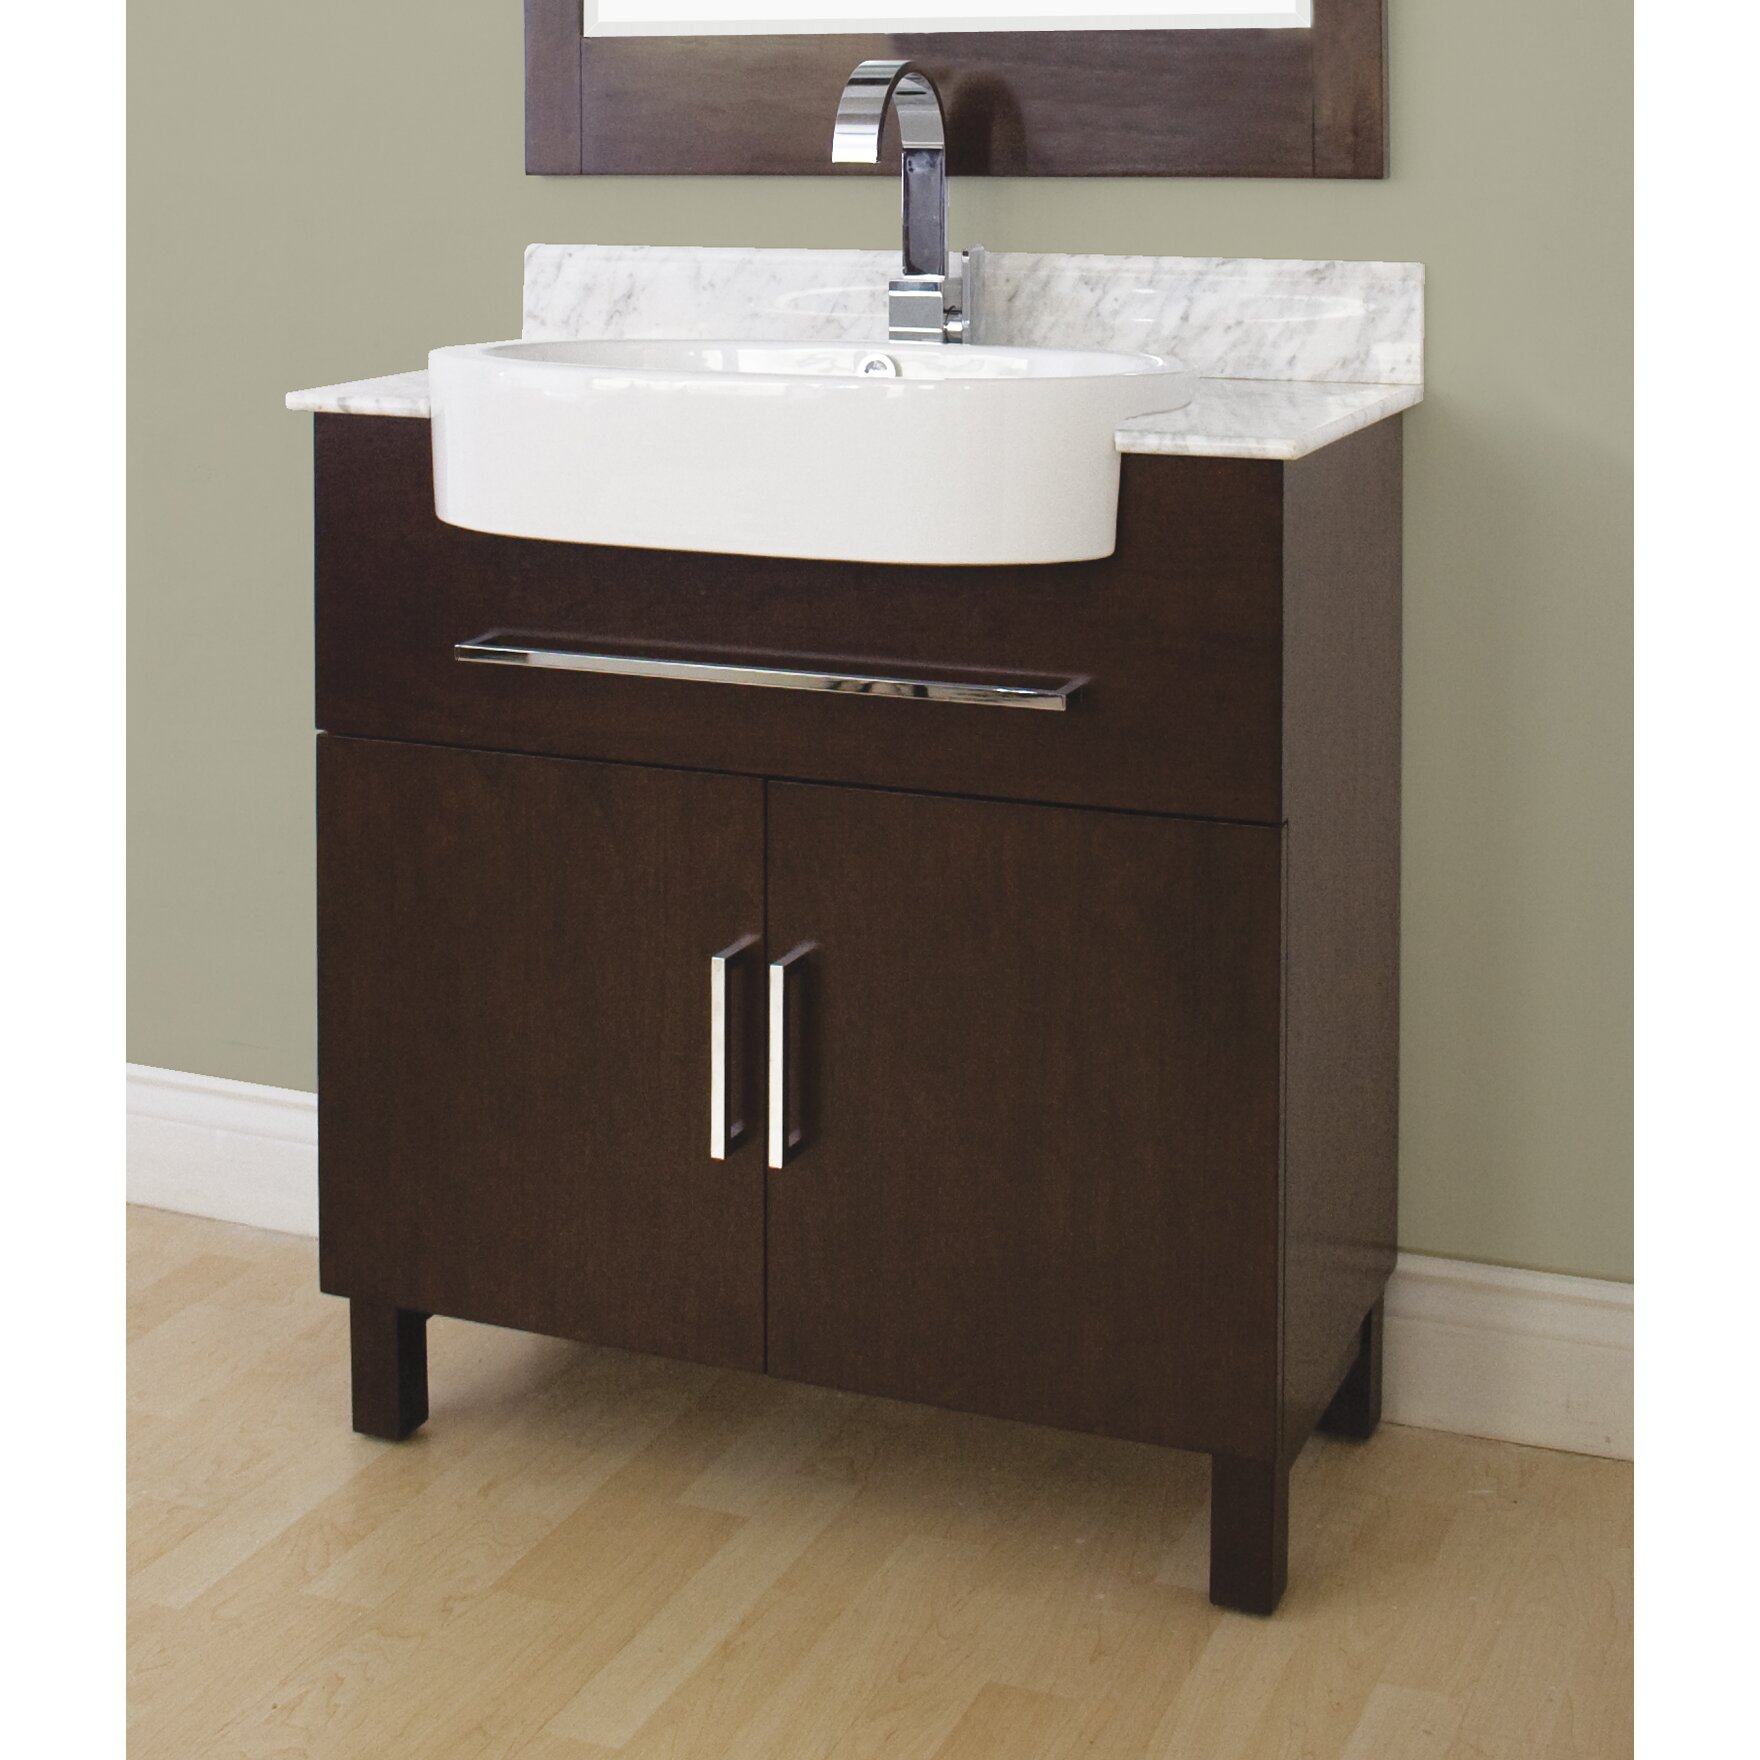 American imaginations 33 single transitional bathroom vanity set reviews Transitional bathroom vanities